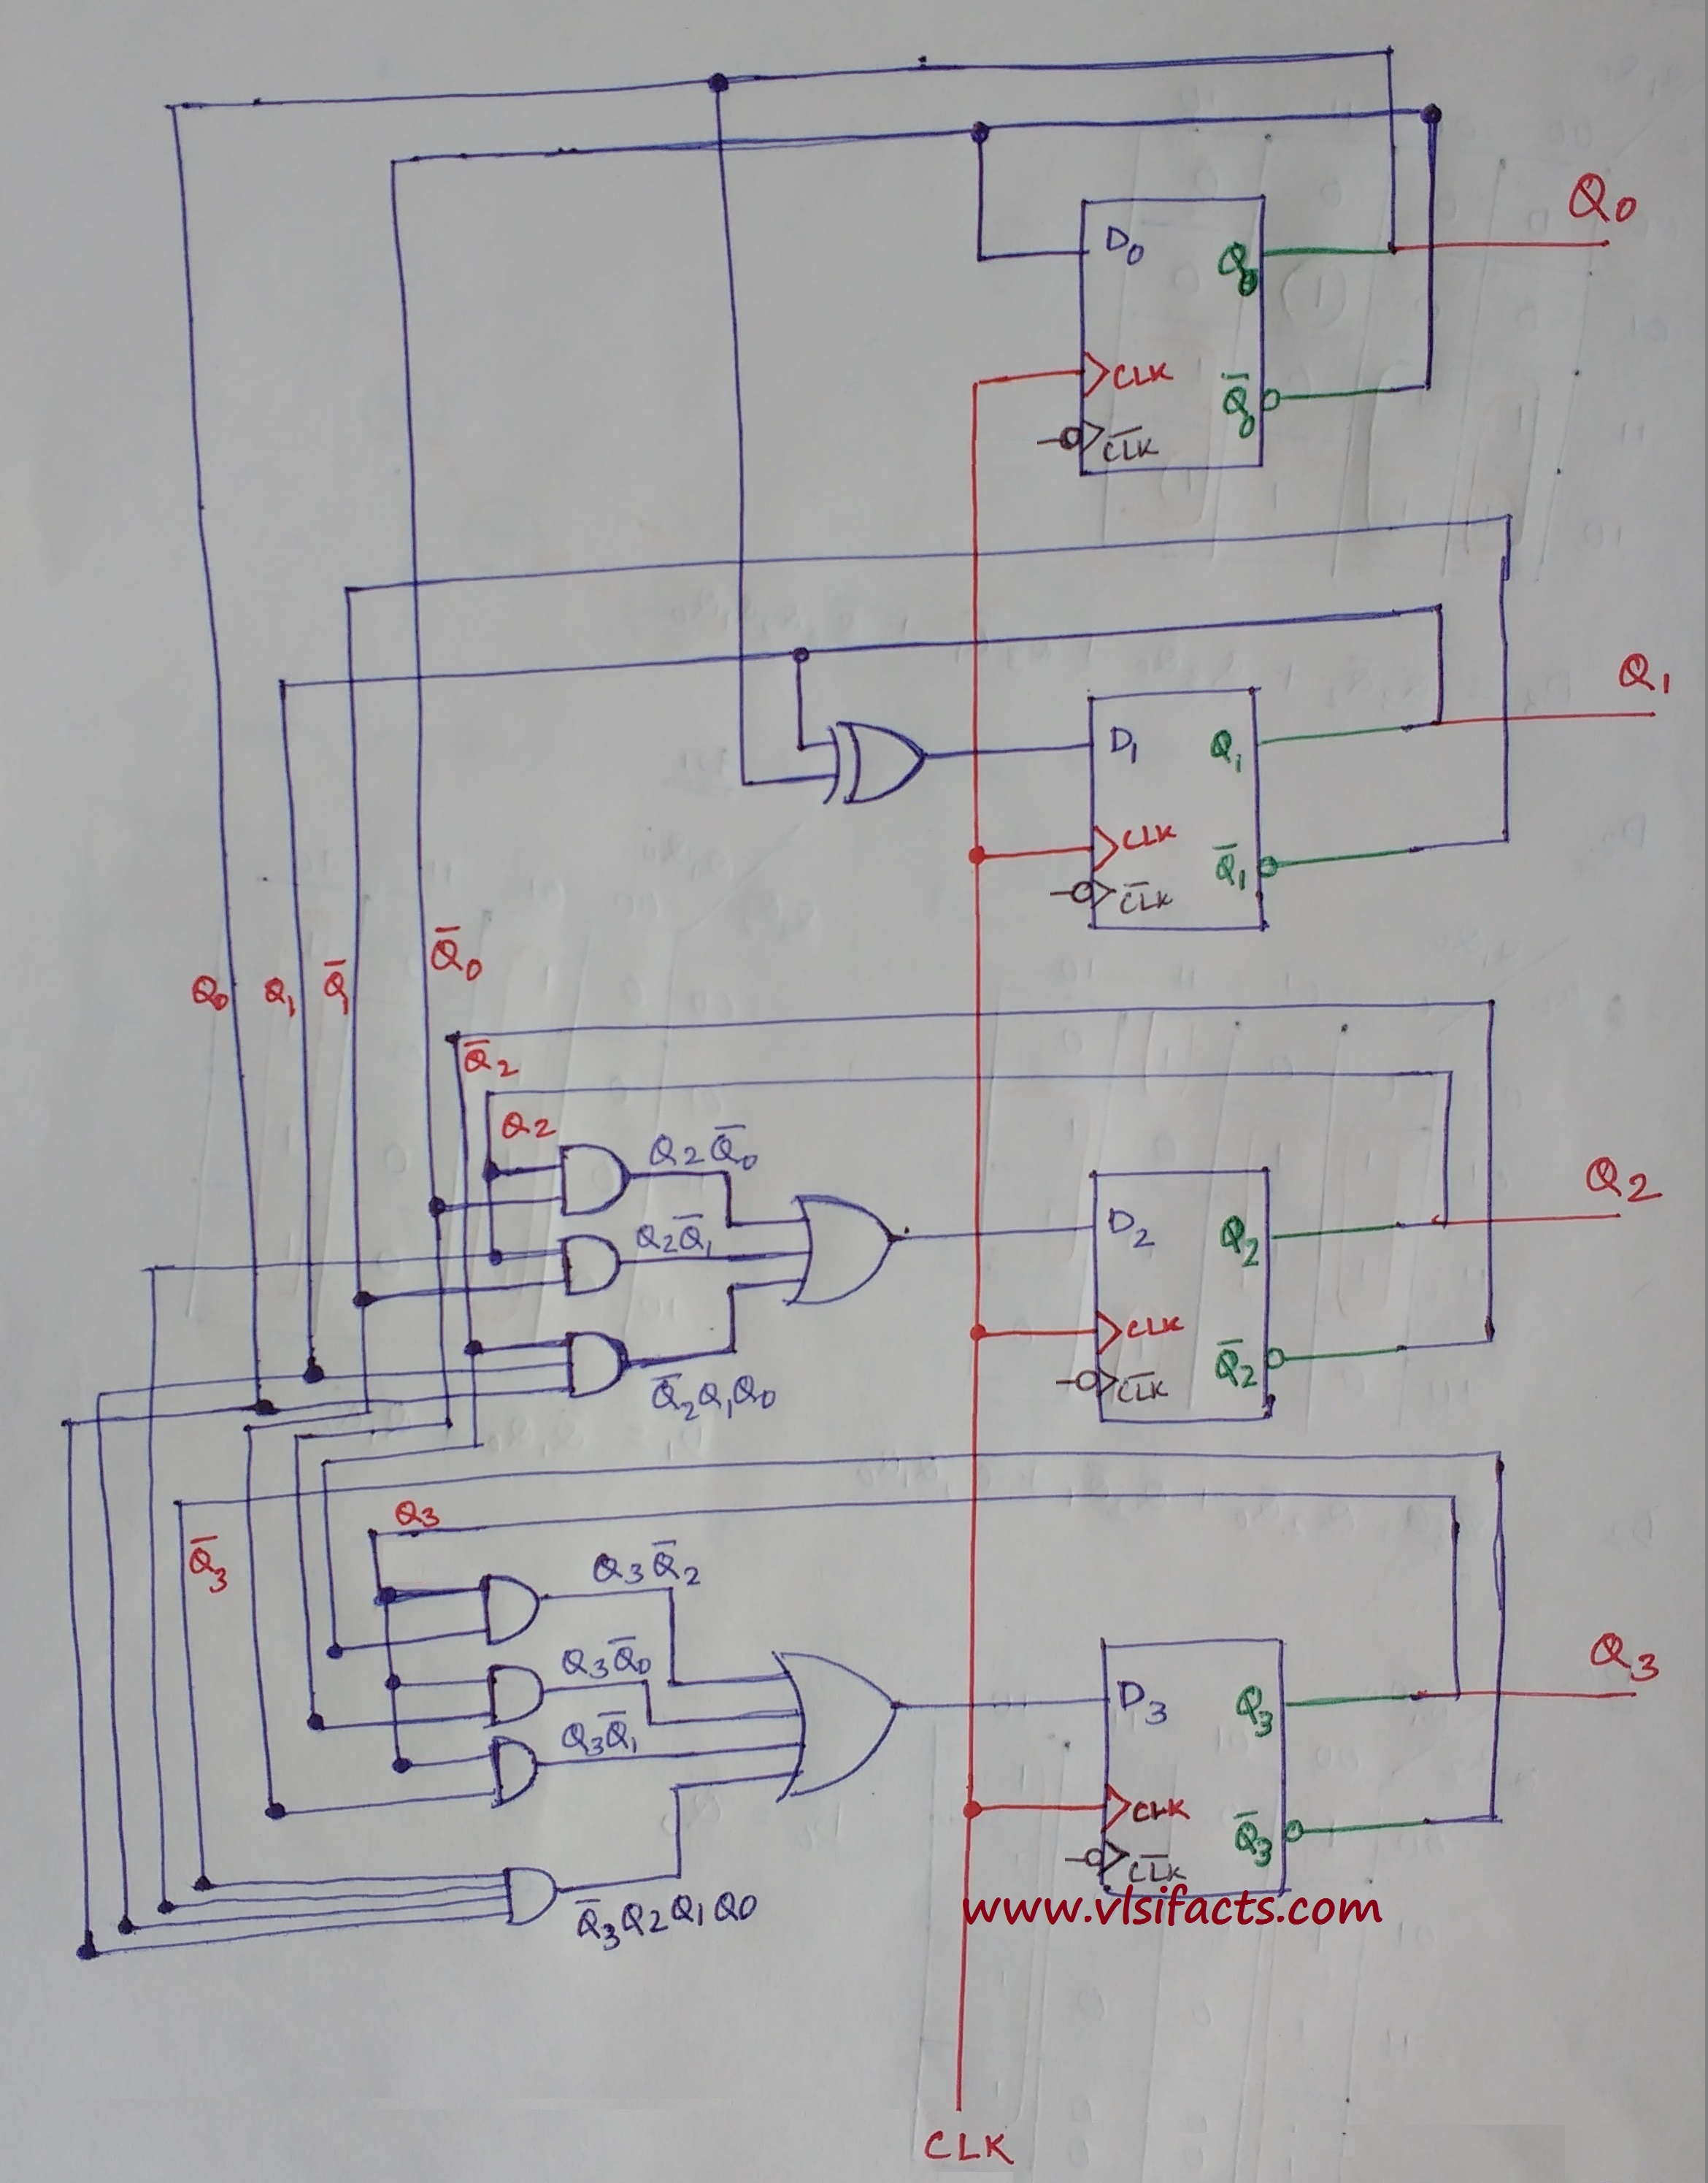 22ce4307d Circuit Design of a 4-bit Binary Counter Using D Flip-flops – VLSIFacts